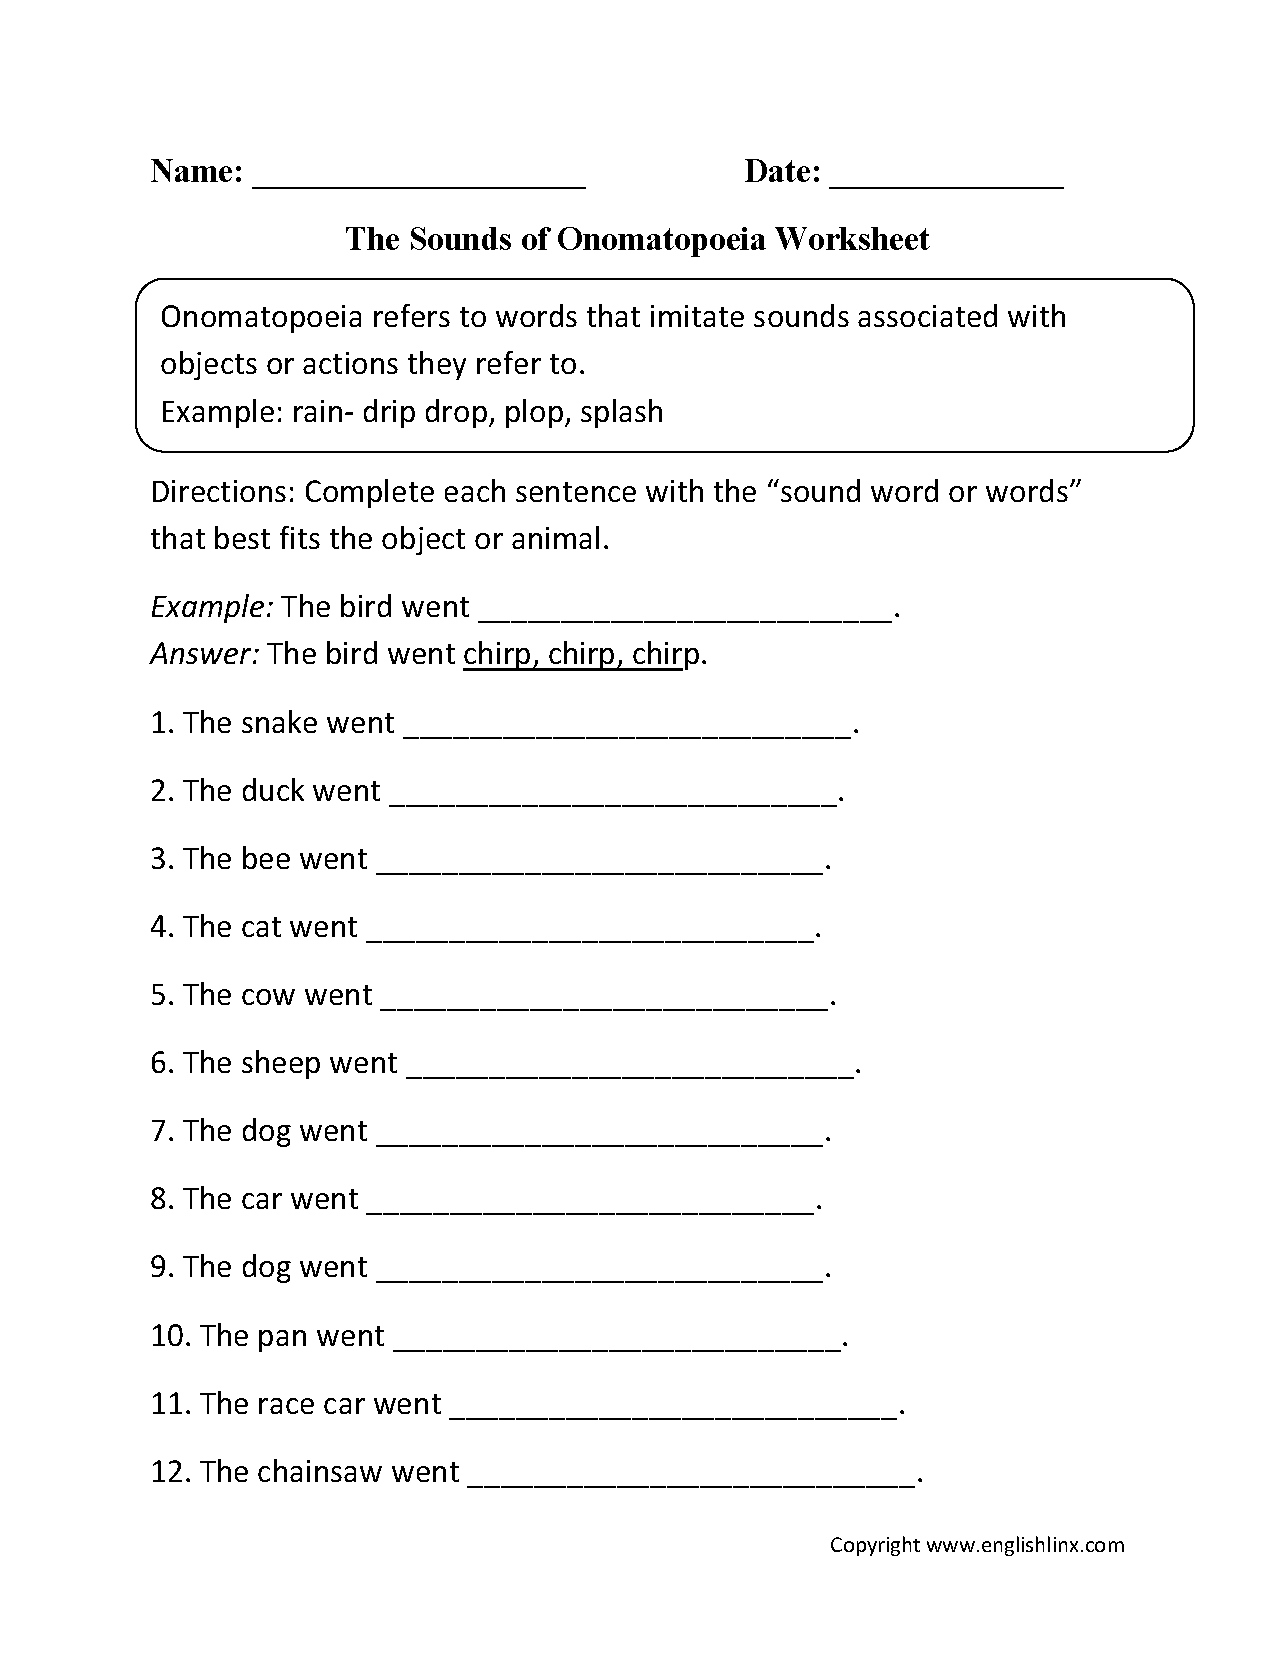 Aldiablosus  Marvelous Englishlinxcom  Onomatopoeia Worksheets With Licious Worksheet With Nice Blank Worksheets Also Free Abc Tracing Worksheets In Addition Adding Worksheets With Pictures And Concept Map Worksheet As Well As Intervention Central Math Worksheet Generator Additionally Federal Itemized Deductions Worksheet From Englishlinxcom With Aldiablosus  Licious Englishlinxcom  Onomatopoeia Worksheets With Nice Worksheet And Marvelous Blank Worksheets Also Free Abc Tracing Worksheets In Addition Adding Worksheets With Pictures From Englishlinxcom